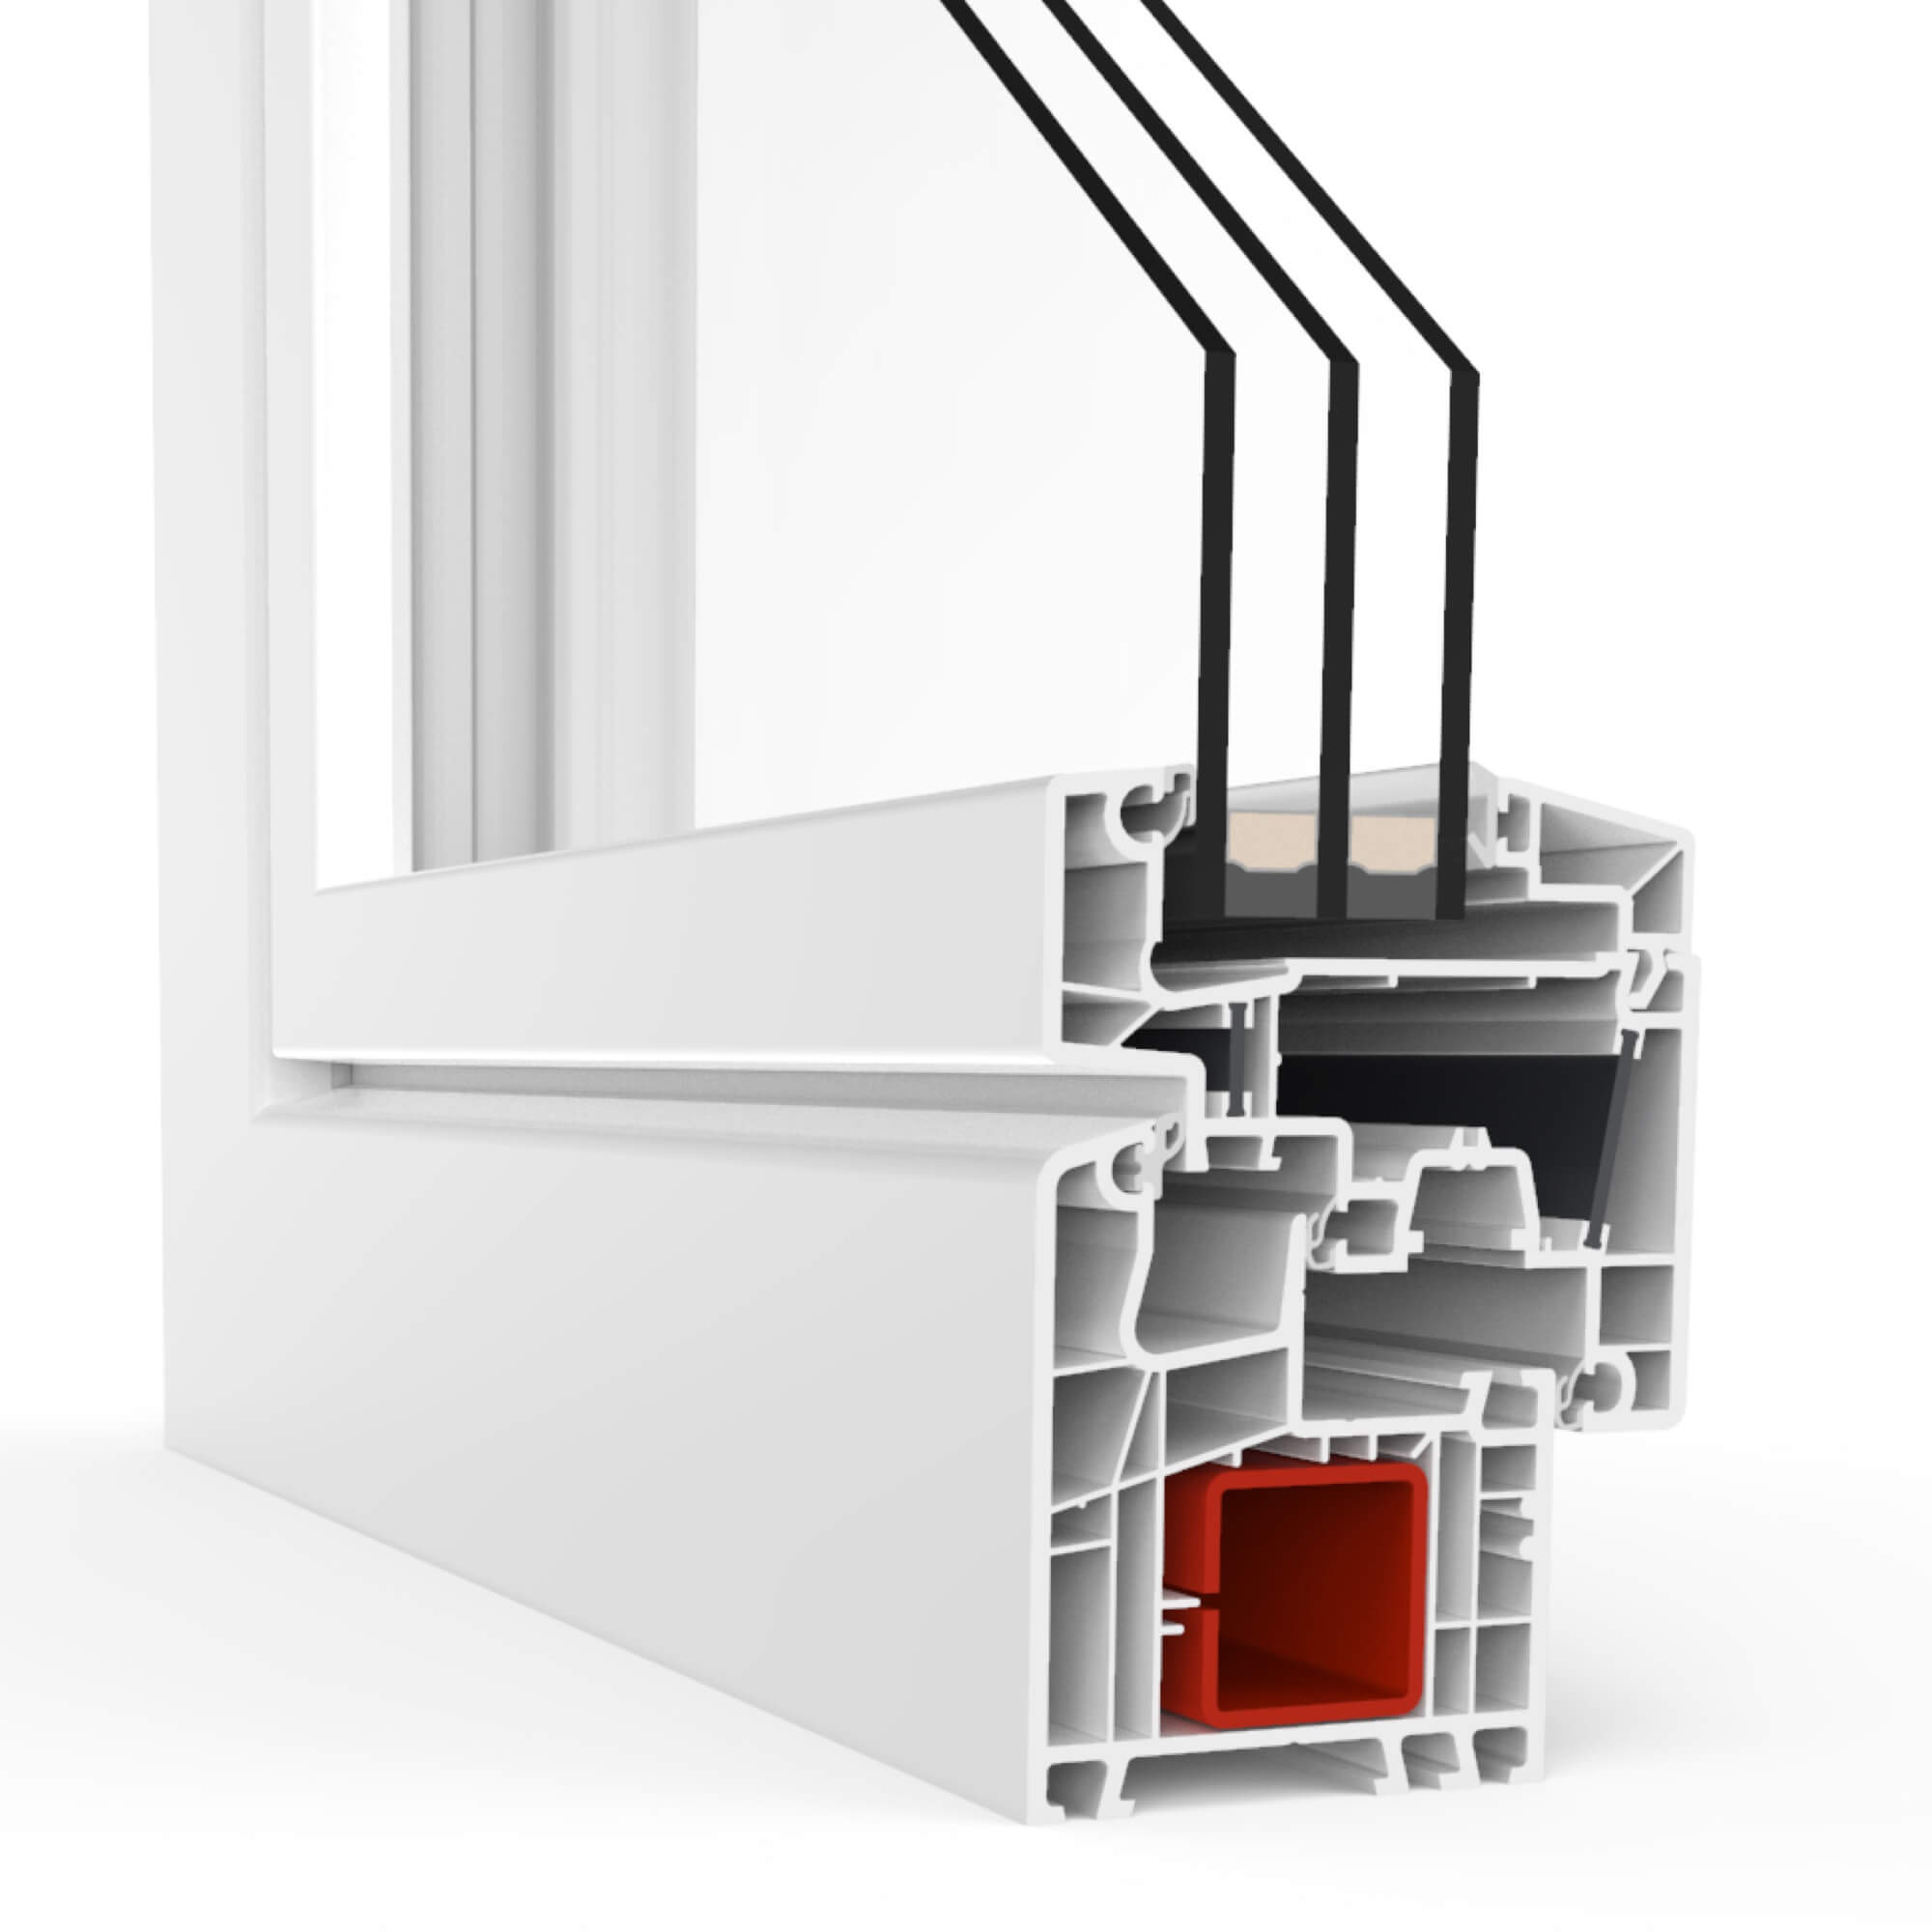 What are the Benefits of UPVC Windows and Doors? Inner organization of the window